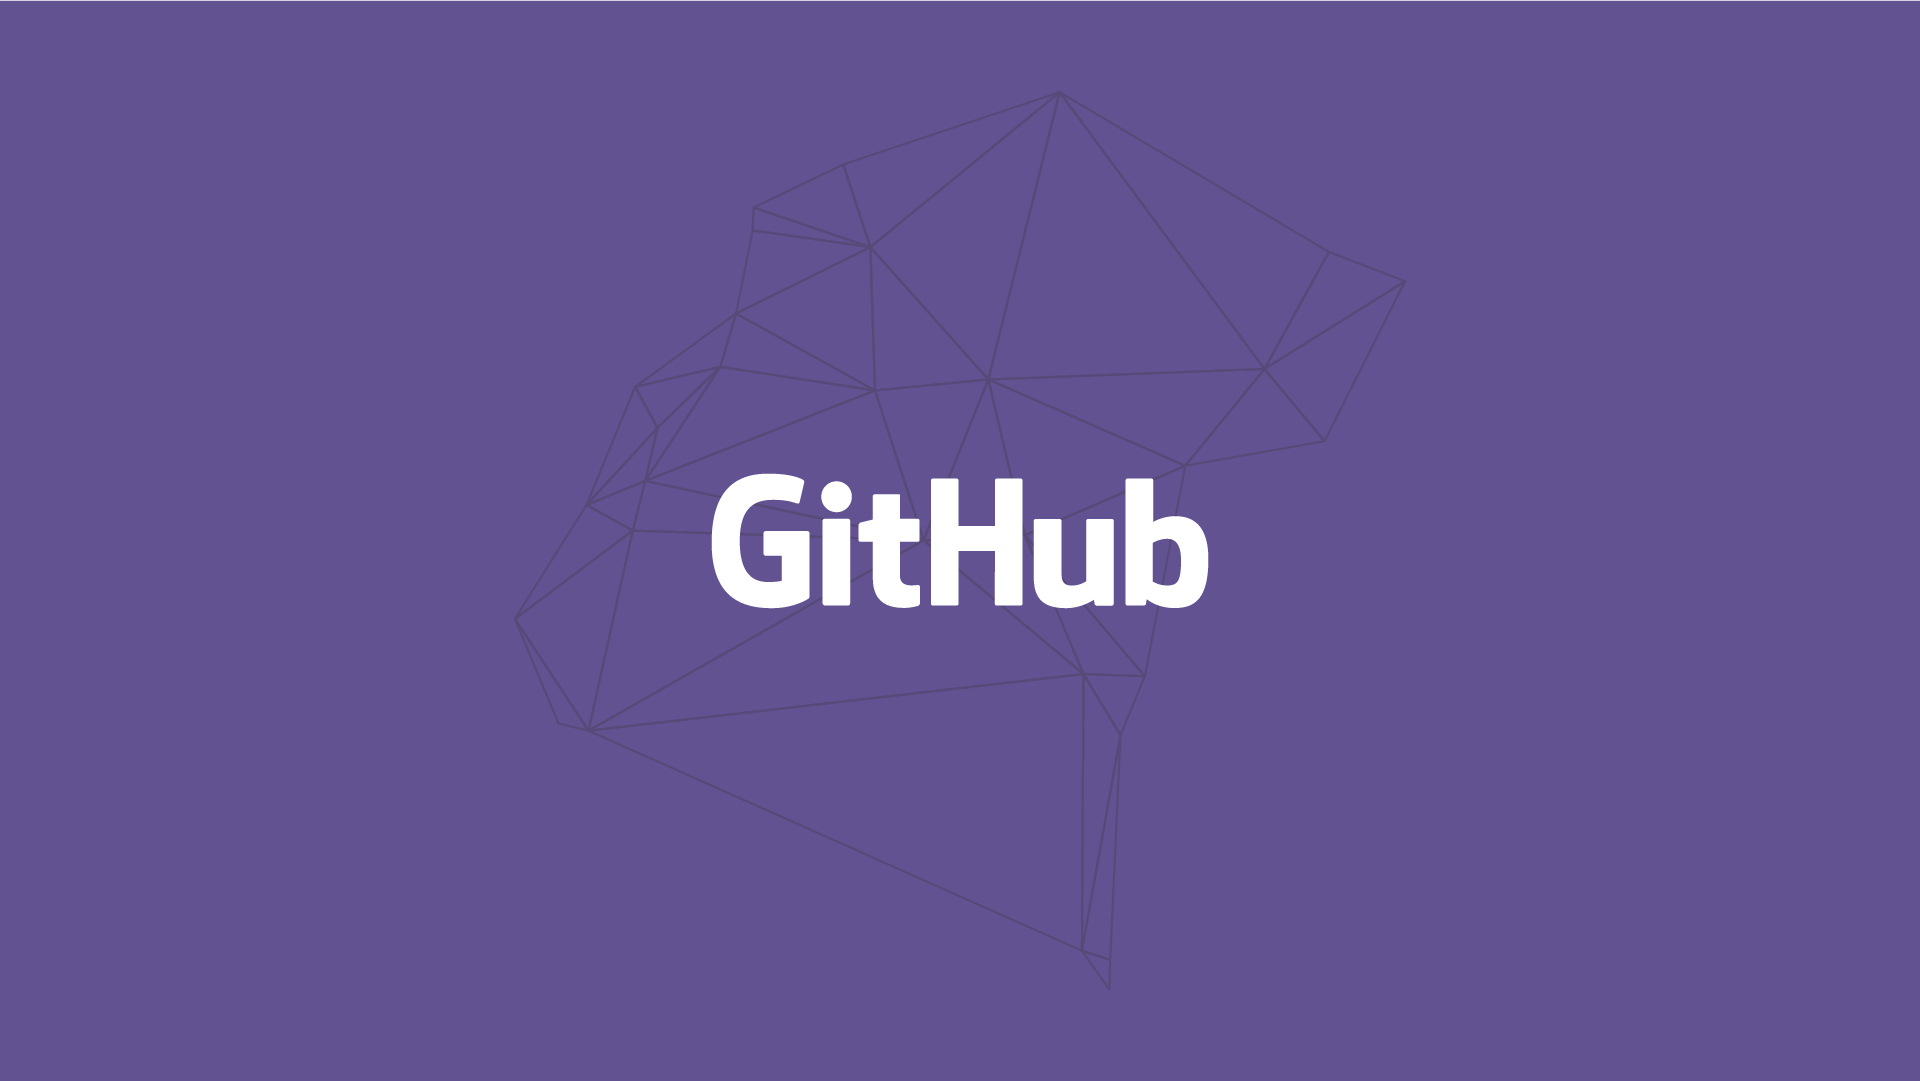 WTF is GitHub and how does it work?